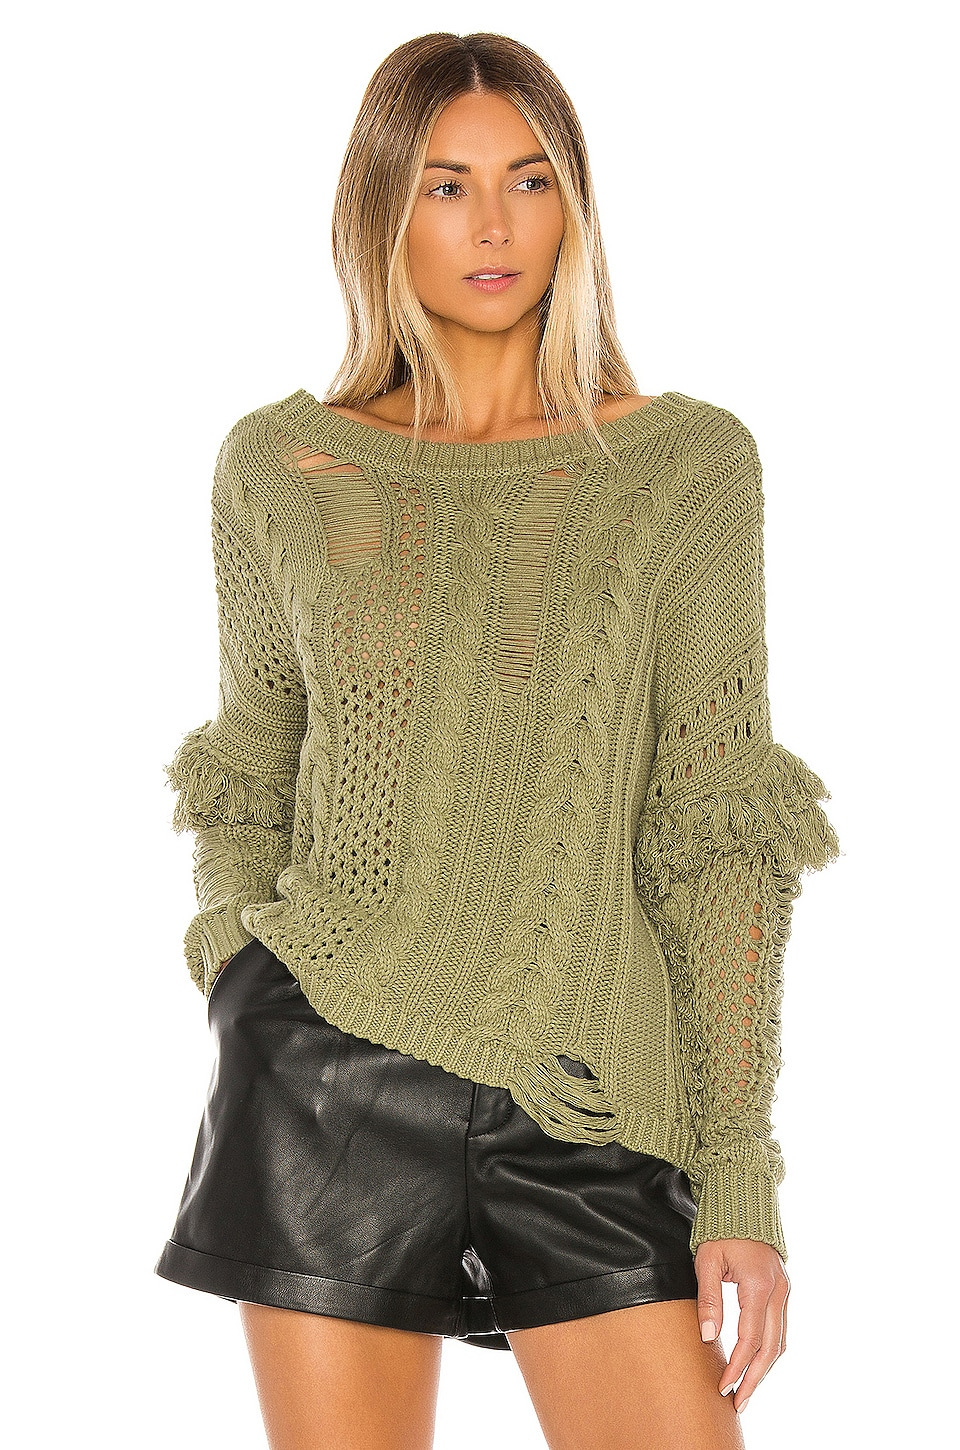 House of Harlow 1960 X REVOLVE Demas Sweater in Olive